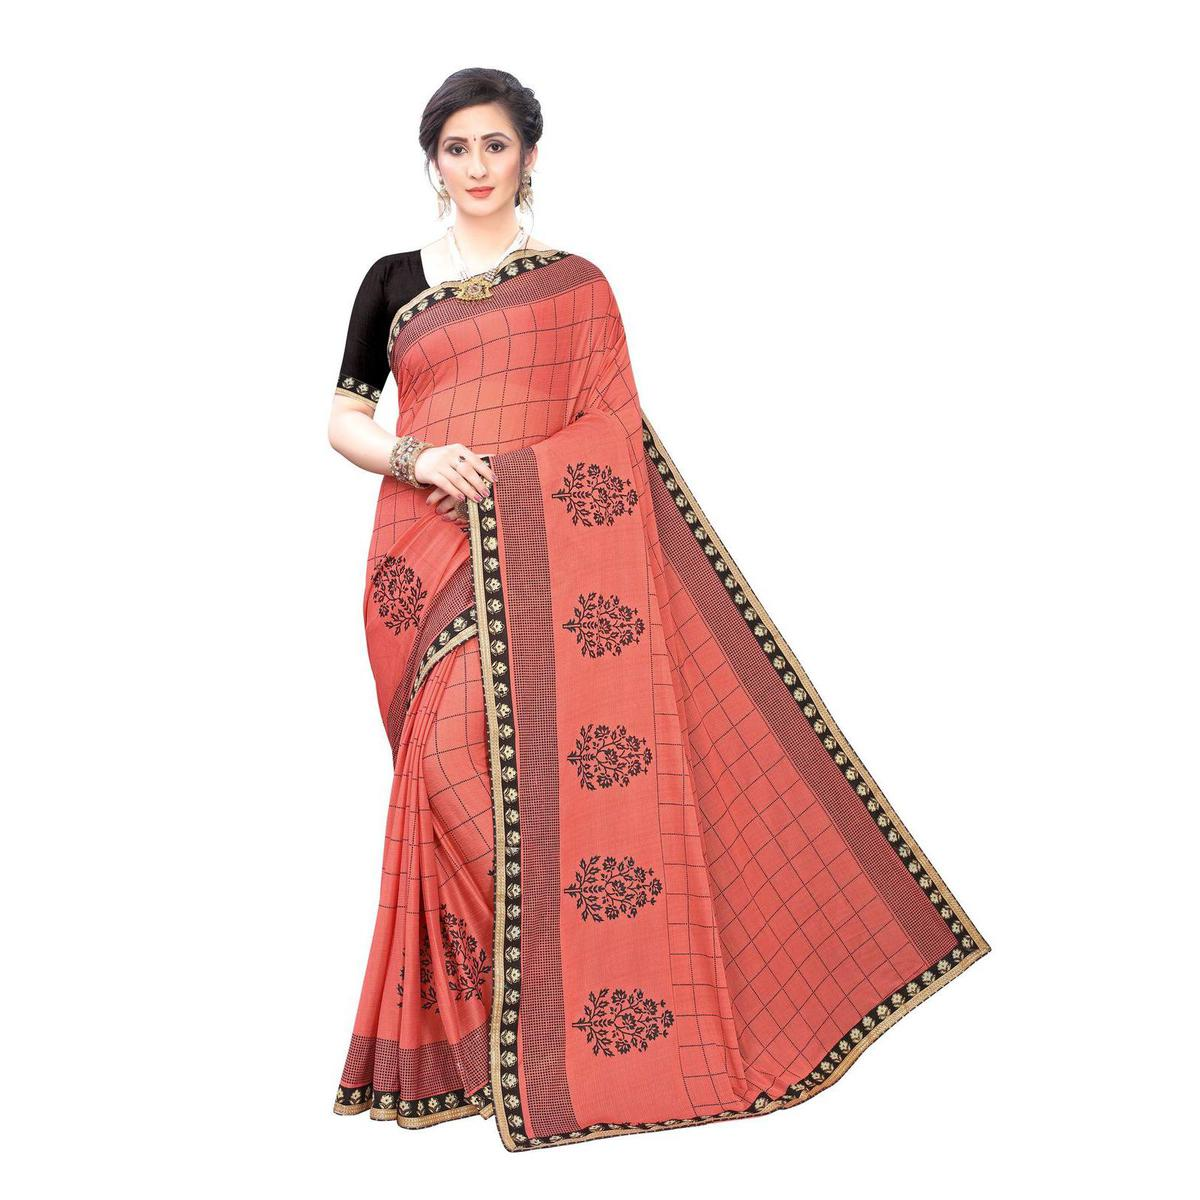 Majesty Peach Colored Party Wear Printed Lycra Blend Saree